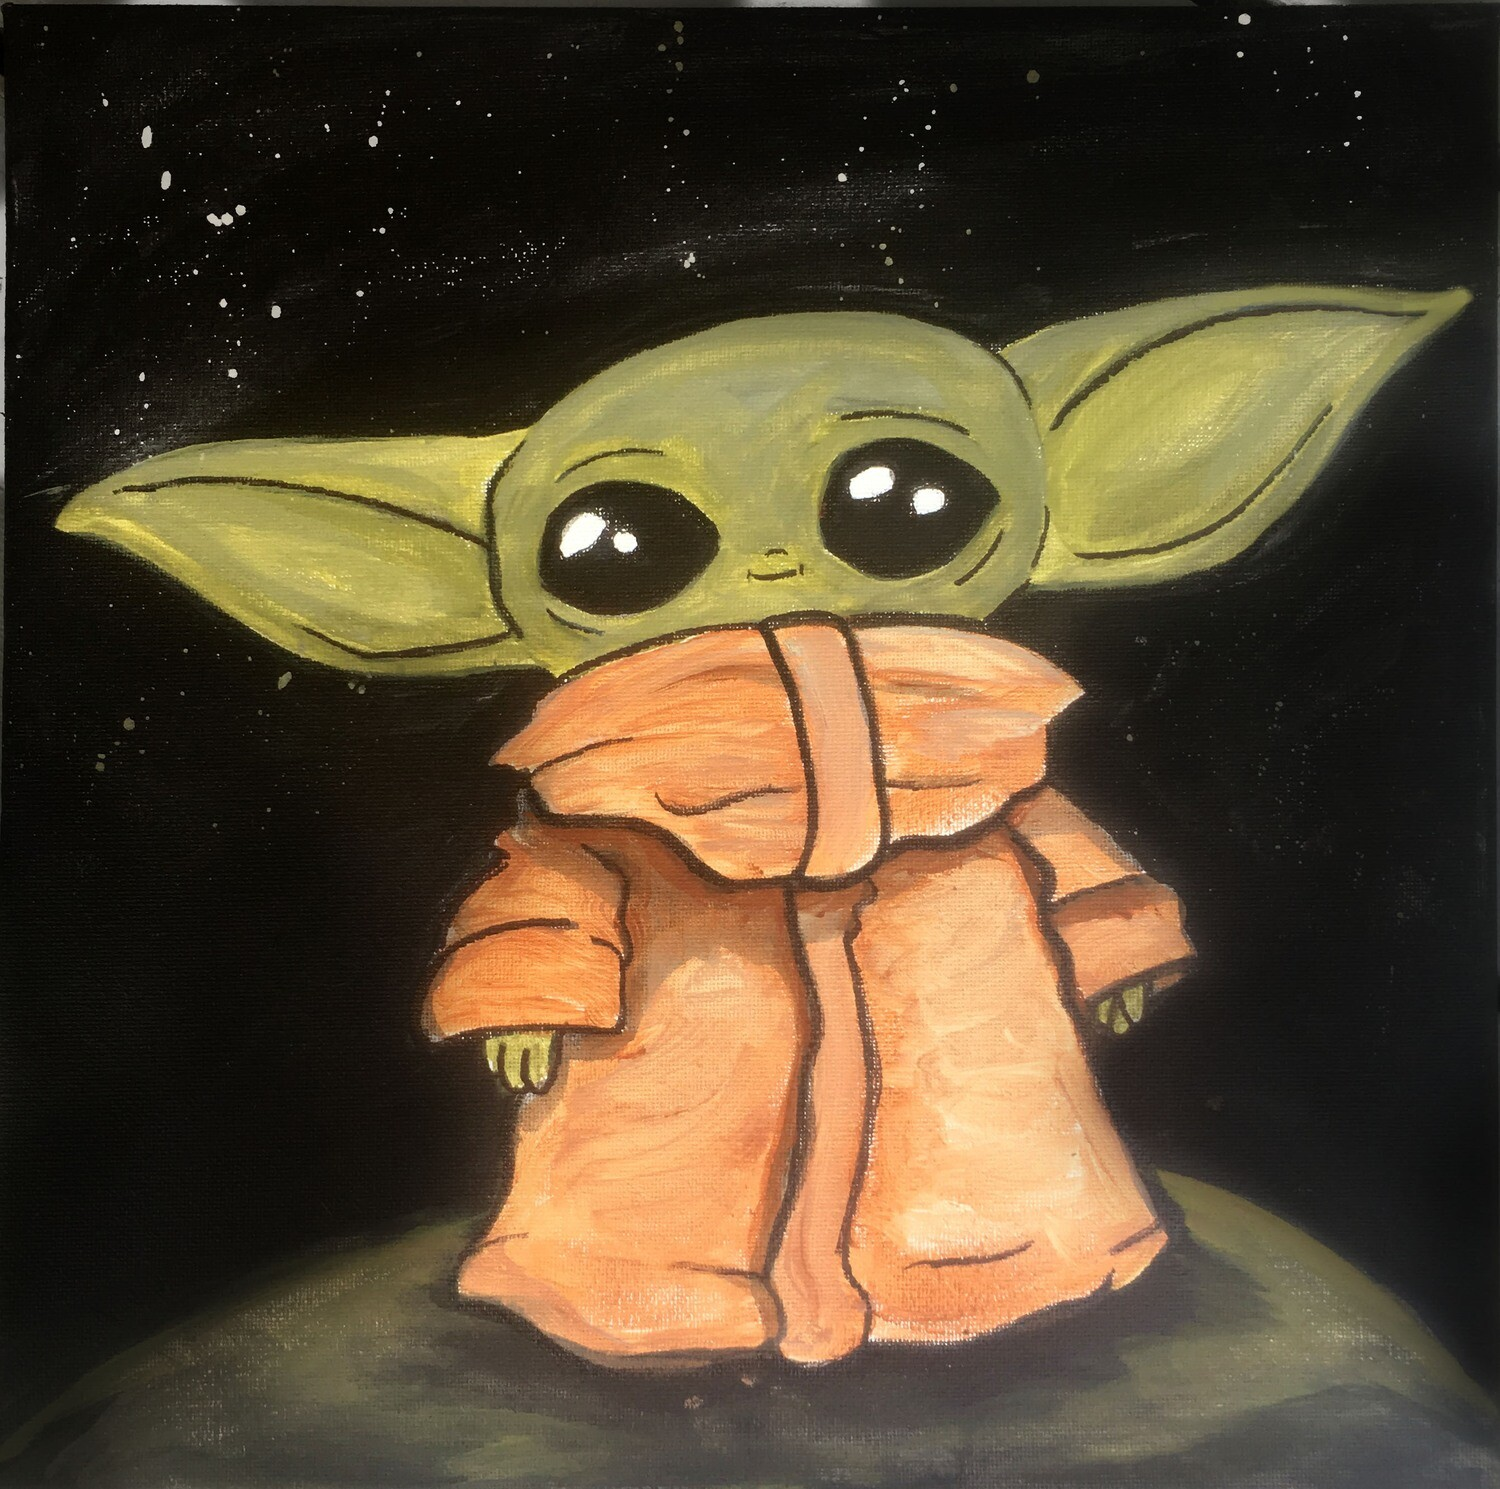 Baby Yoda - Adult or Child